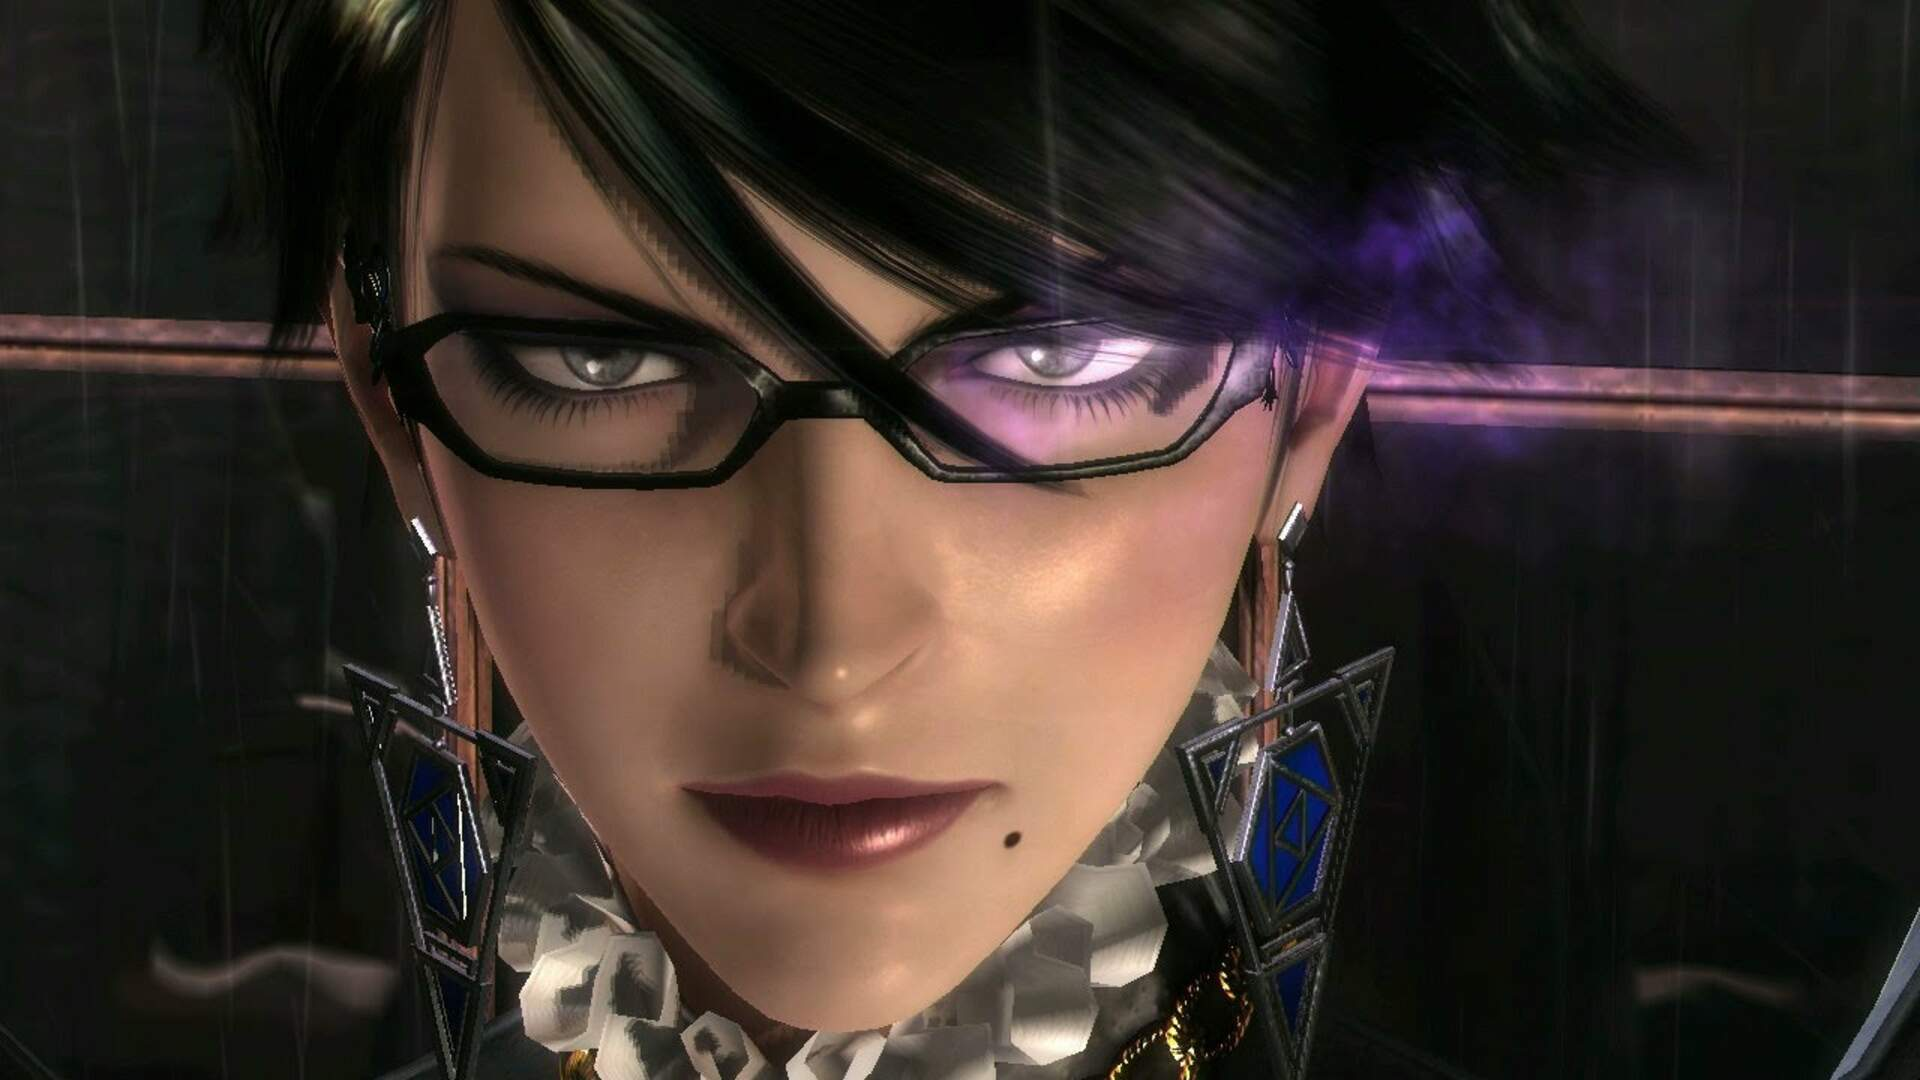 Bayonetta 2: All Aboard the Crazy Train to Bonkersville